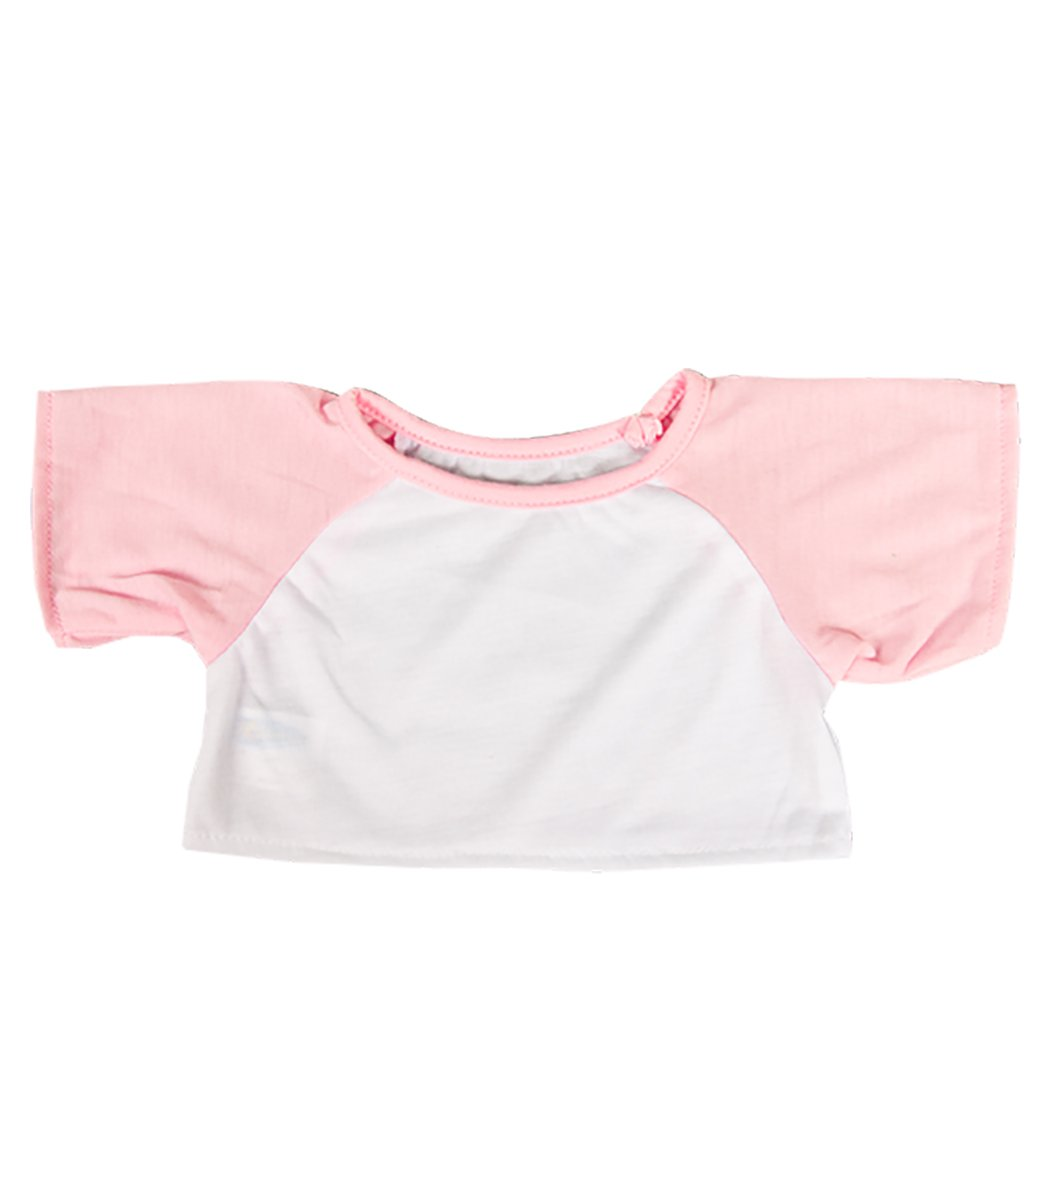 Stuffems Toy Shop White Tee w// Light Pink Sleeves Outfit Teddy Bear Clothes Fit 14-18 Build-a-Bear Vermont Teddy Bears and Make Your Teddy Mountain